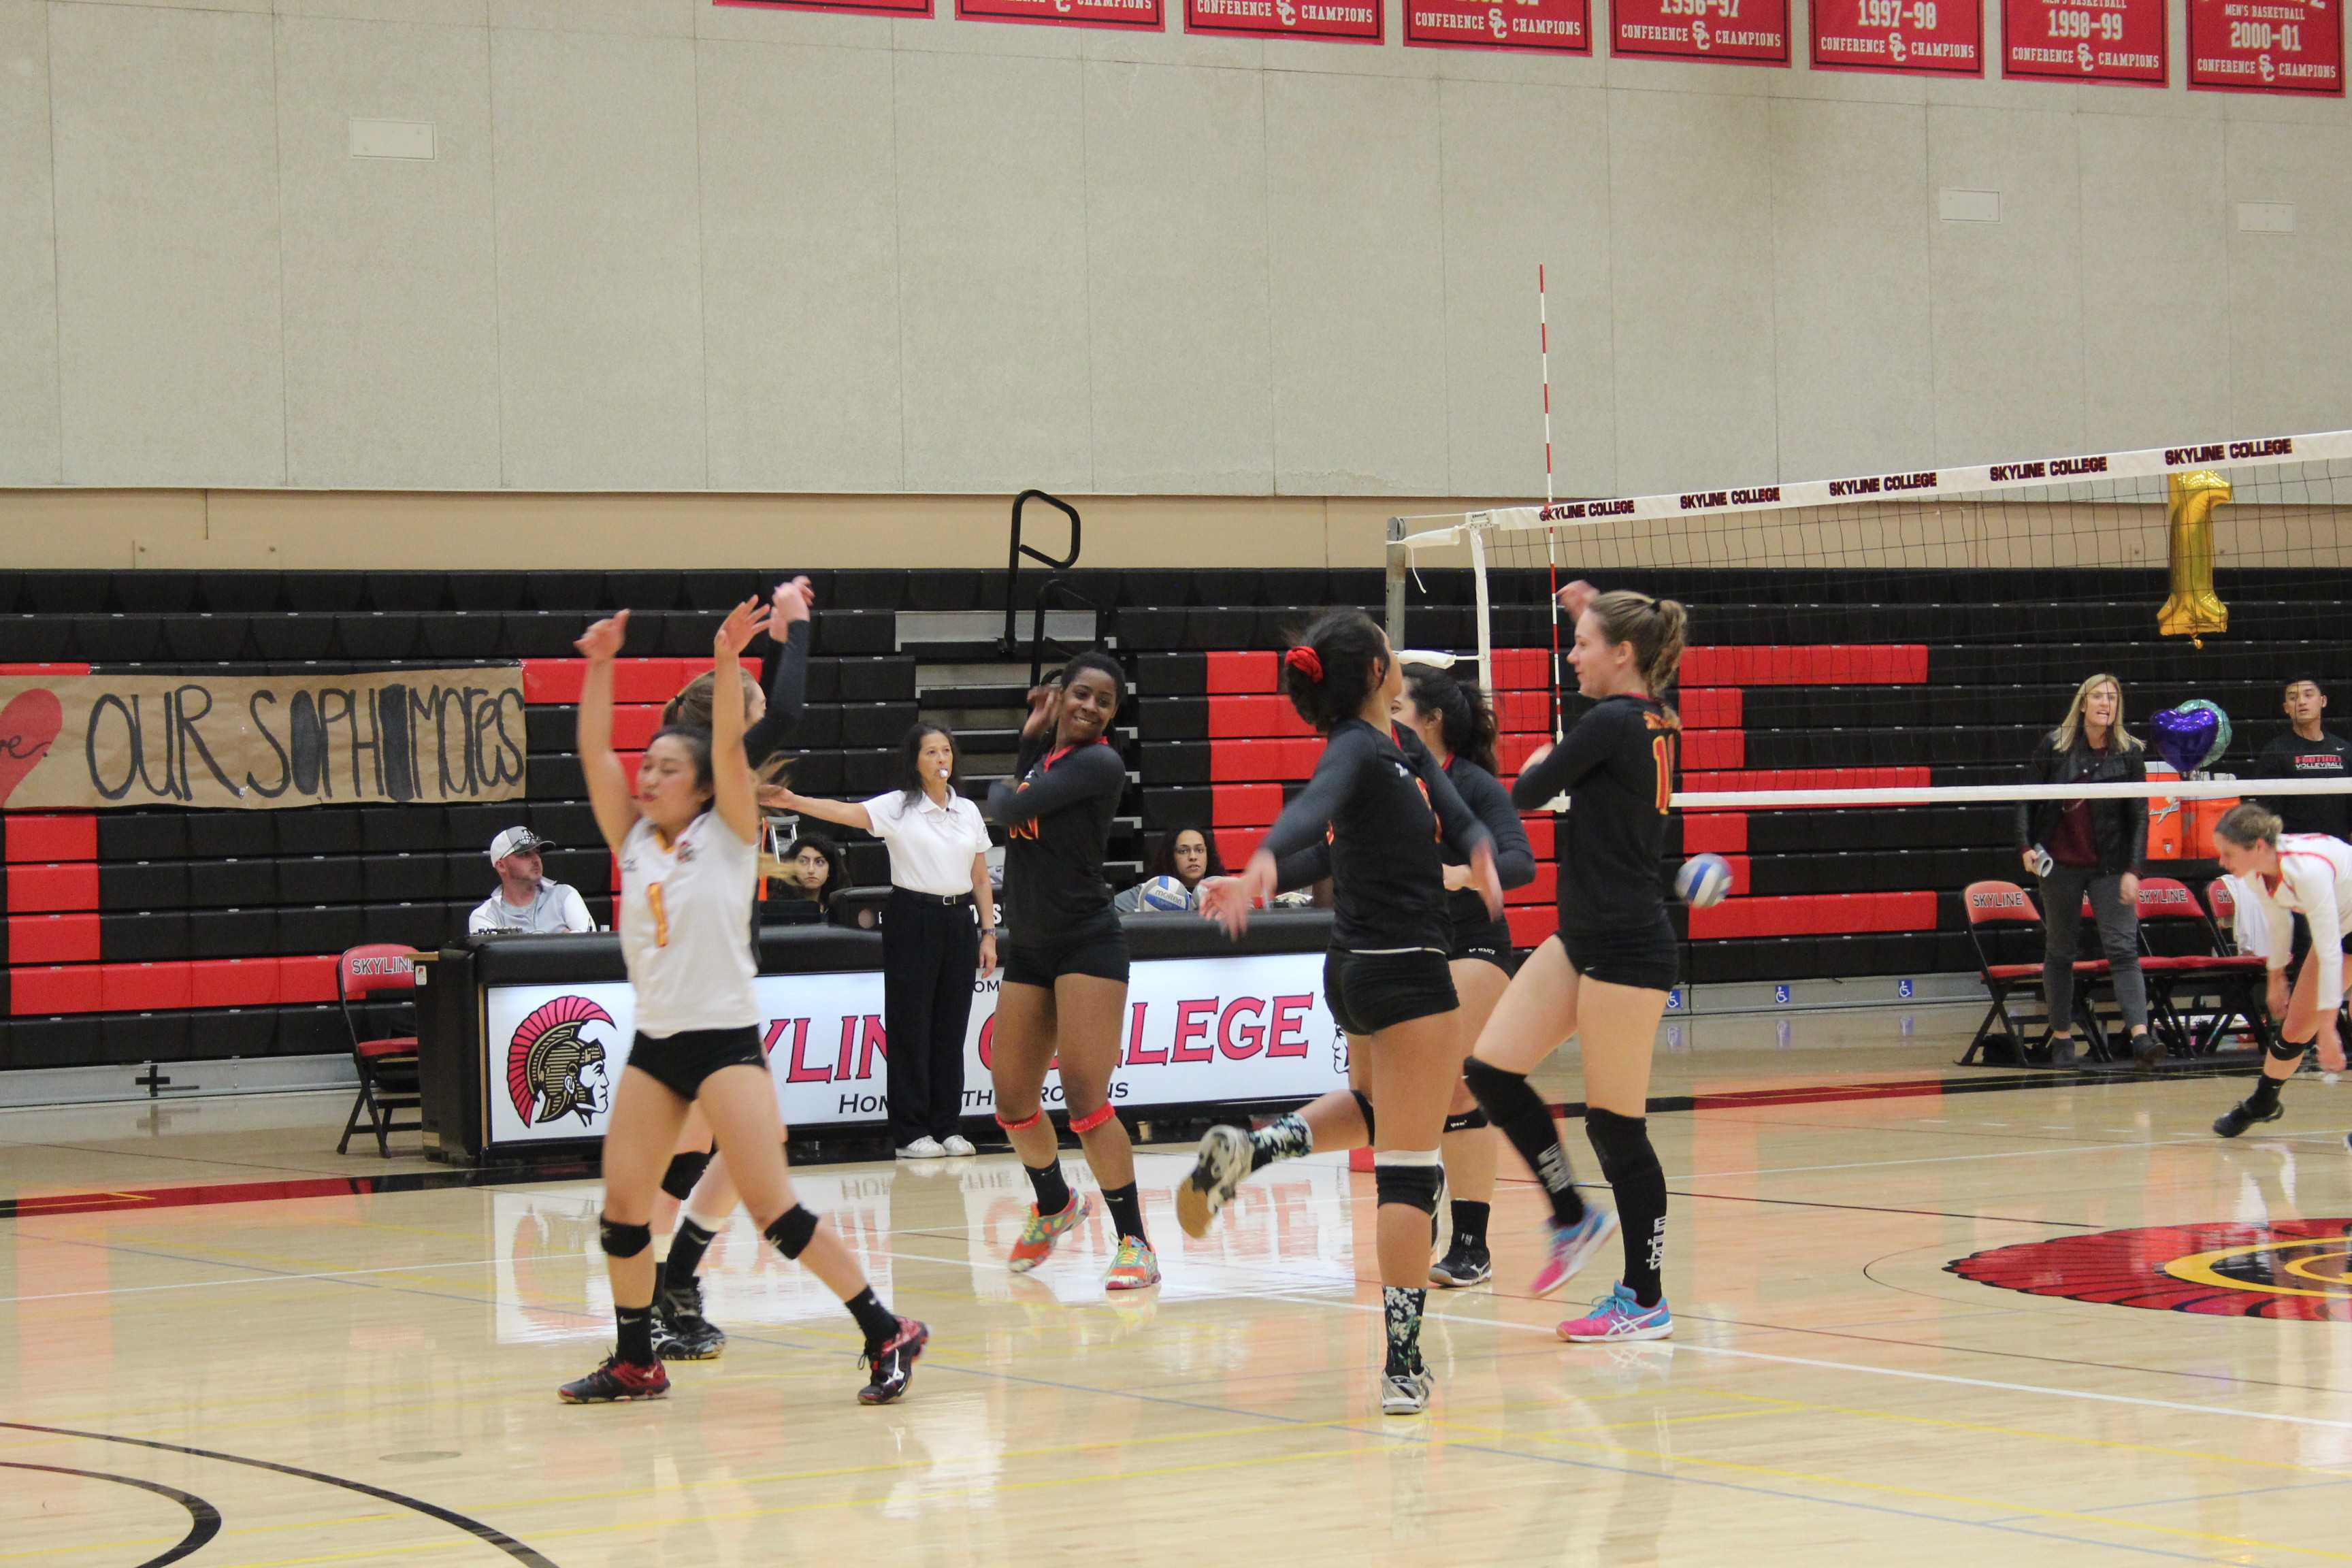 The team celebrates as a group after a score against Foothill College on Nov. 23, 2016.